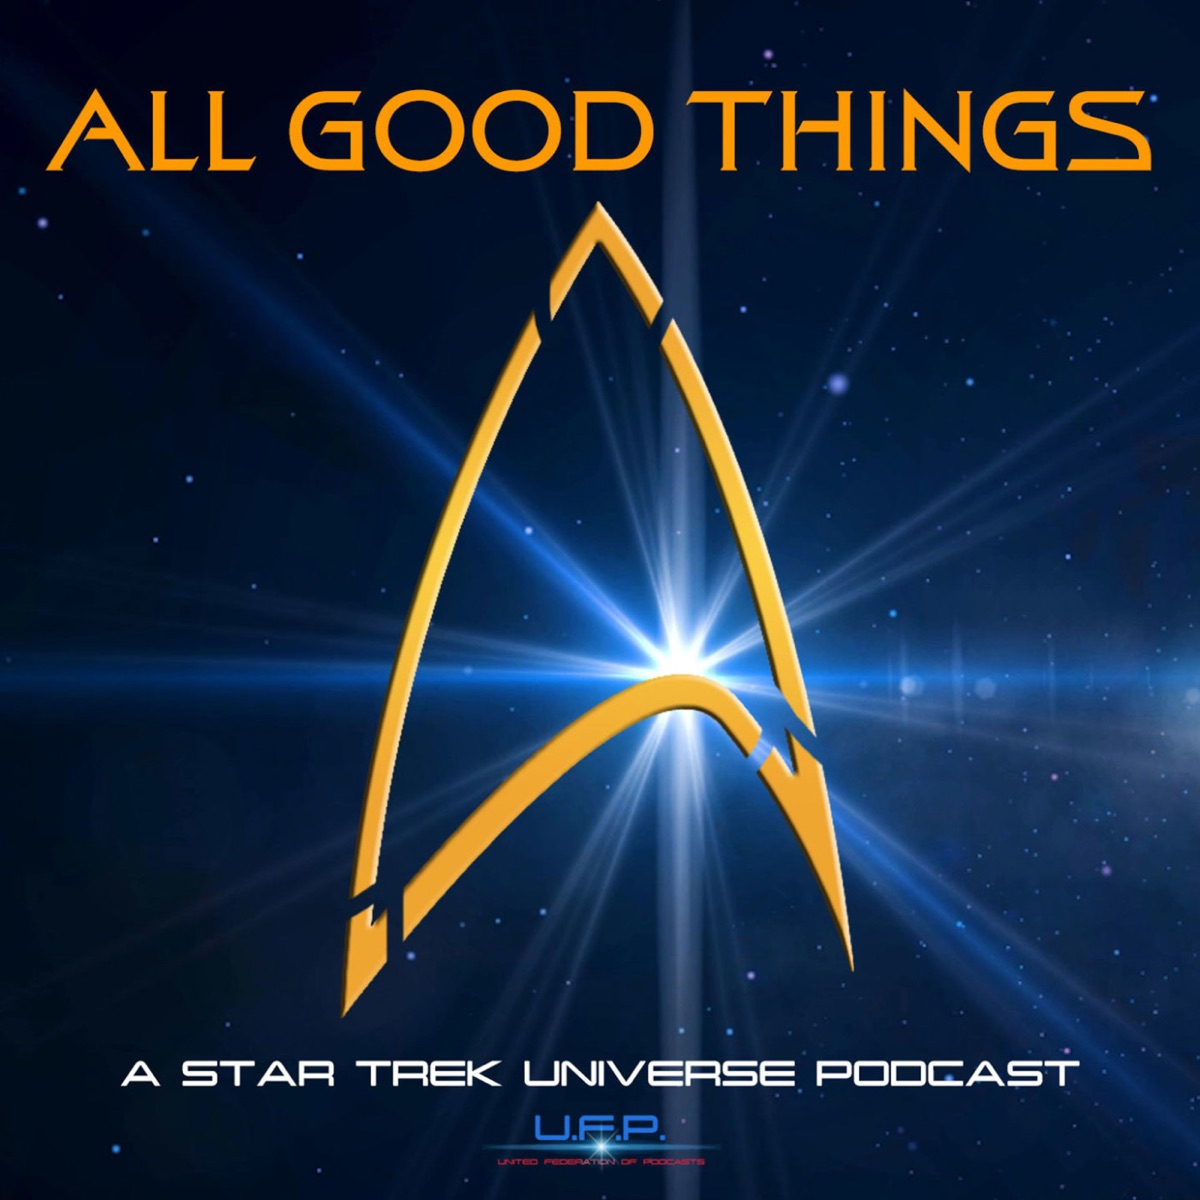 All Good Things: A Star Trek Universe Podcast